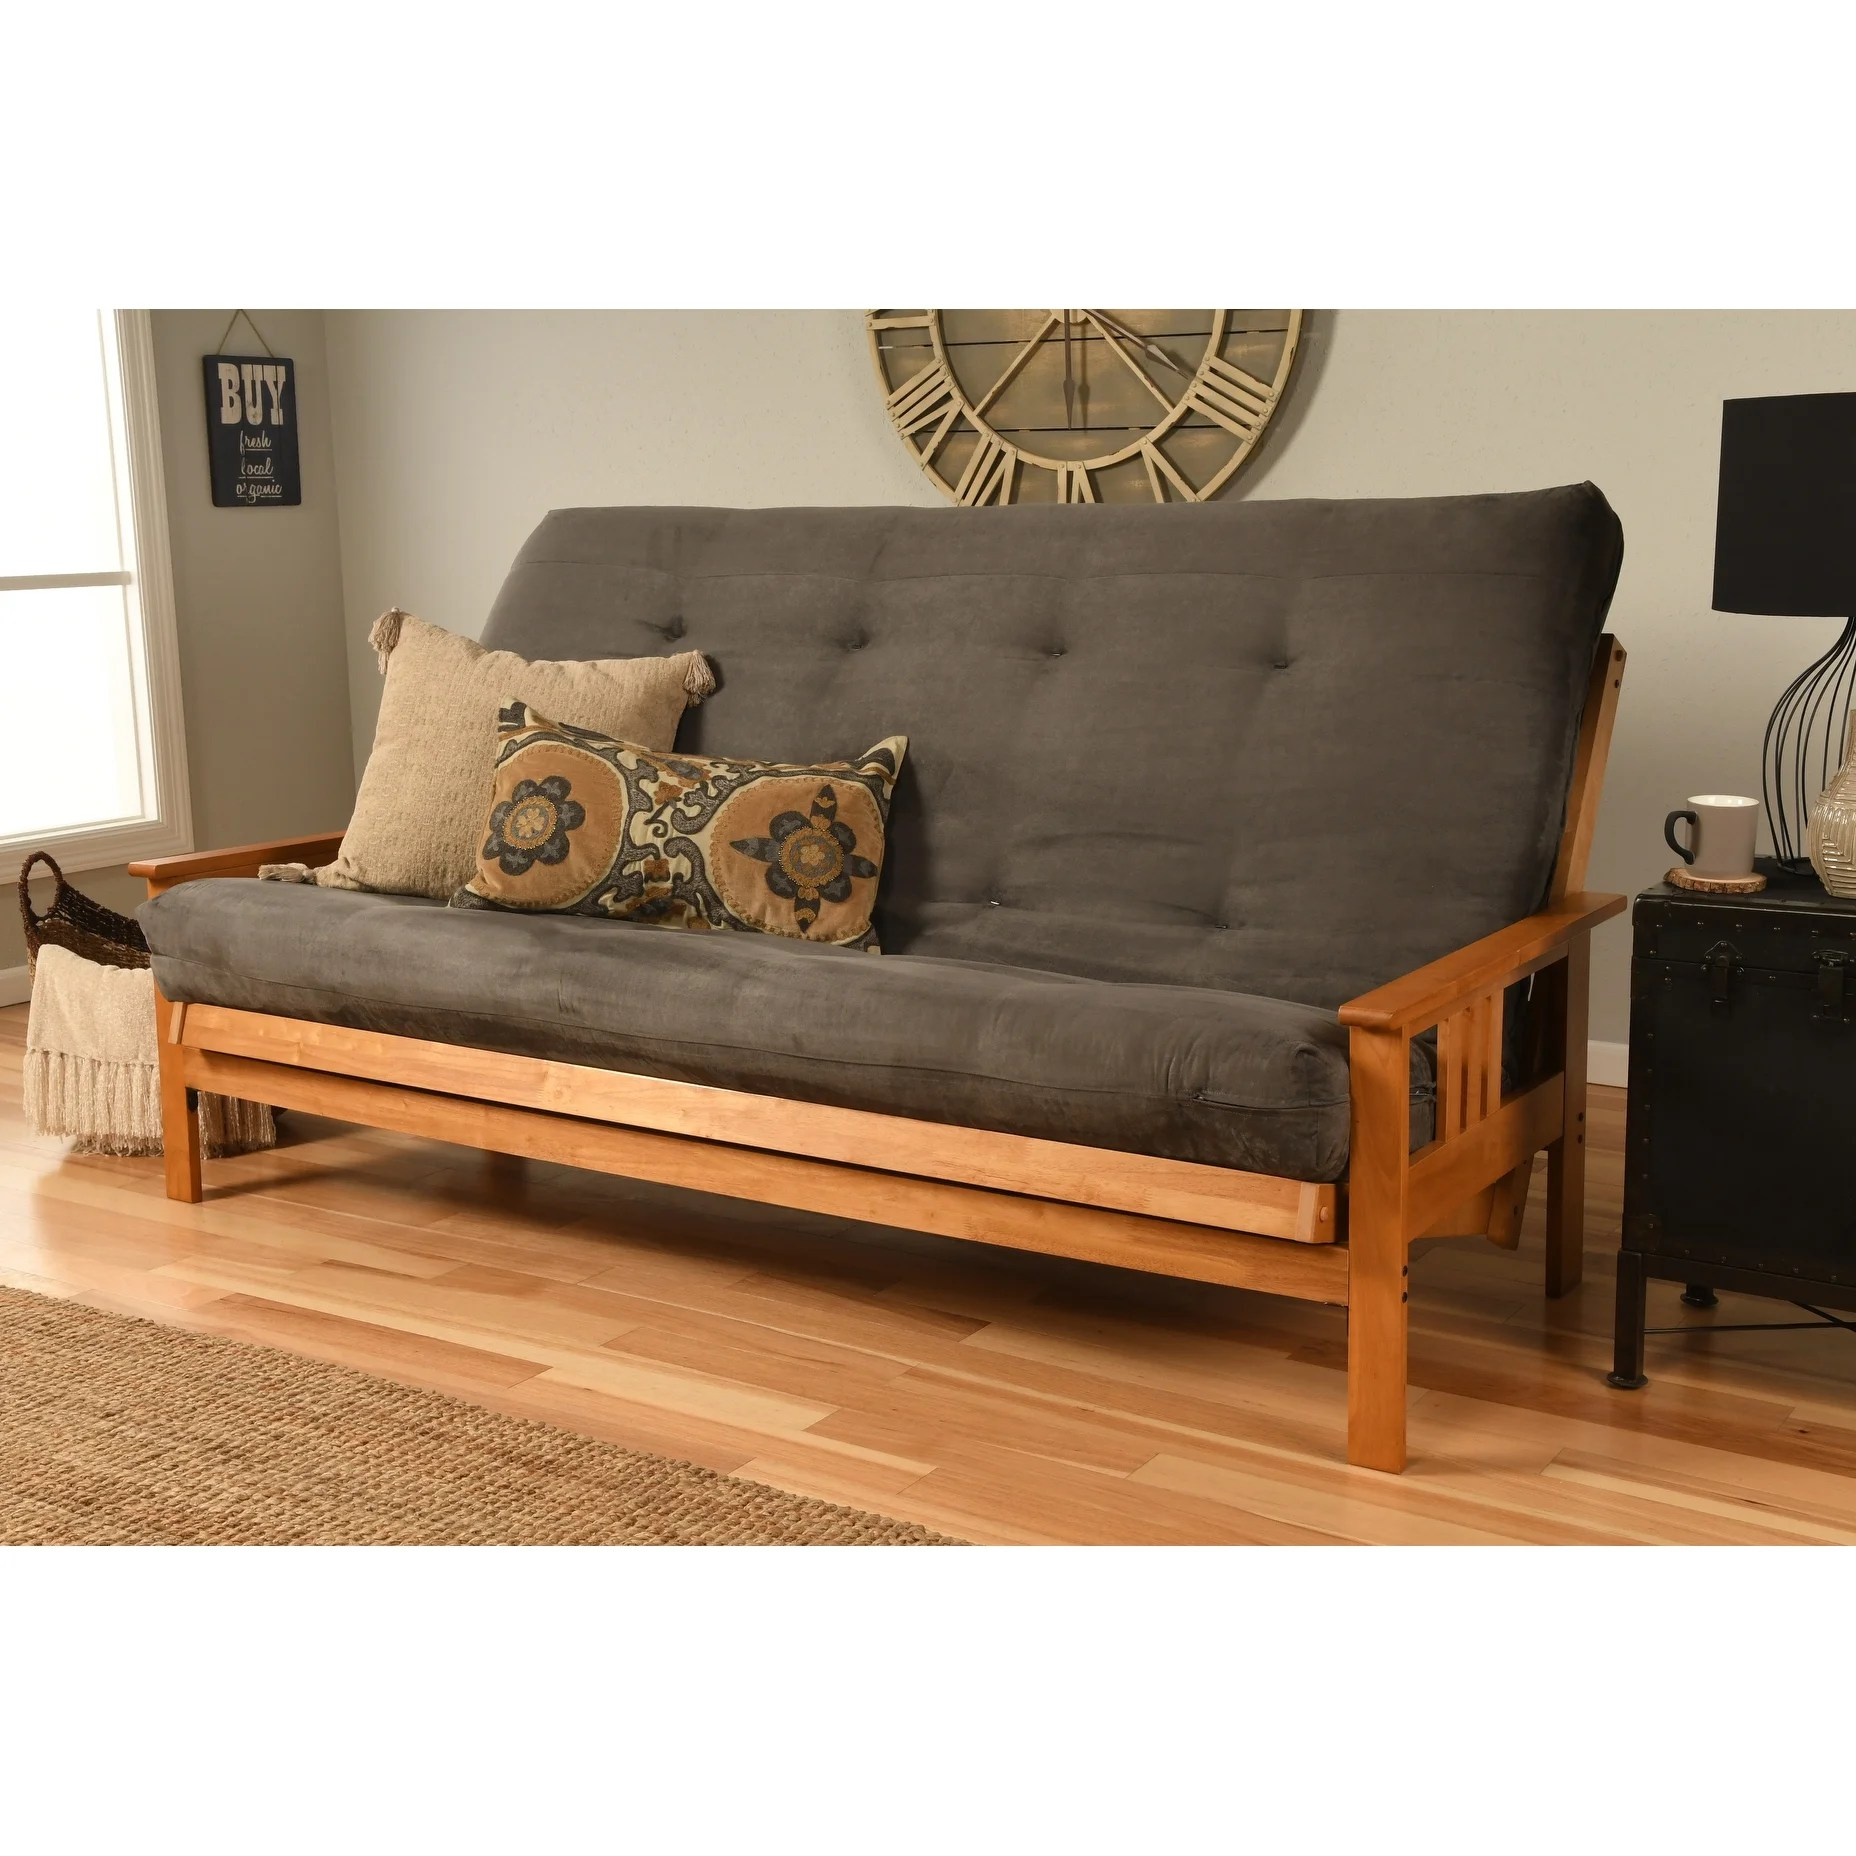 Butternut Finish Hardwood Queen Futon With Suede Mattress On Sale Overstock 26037544